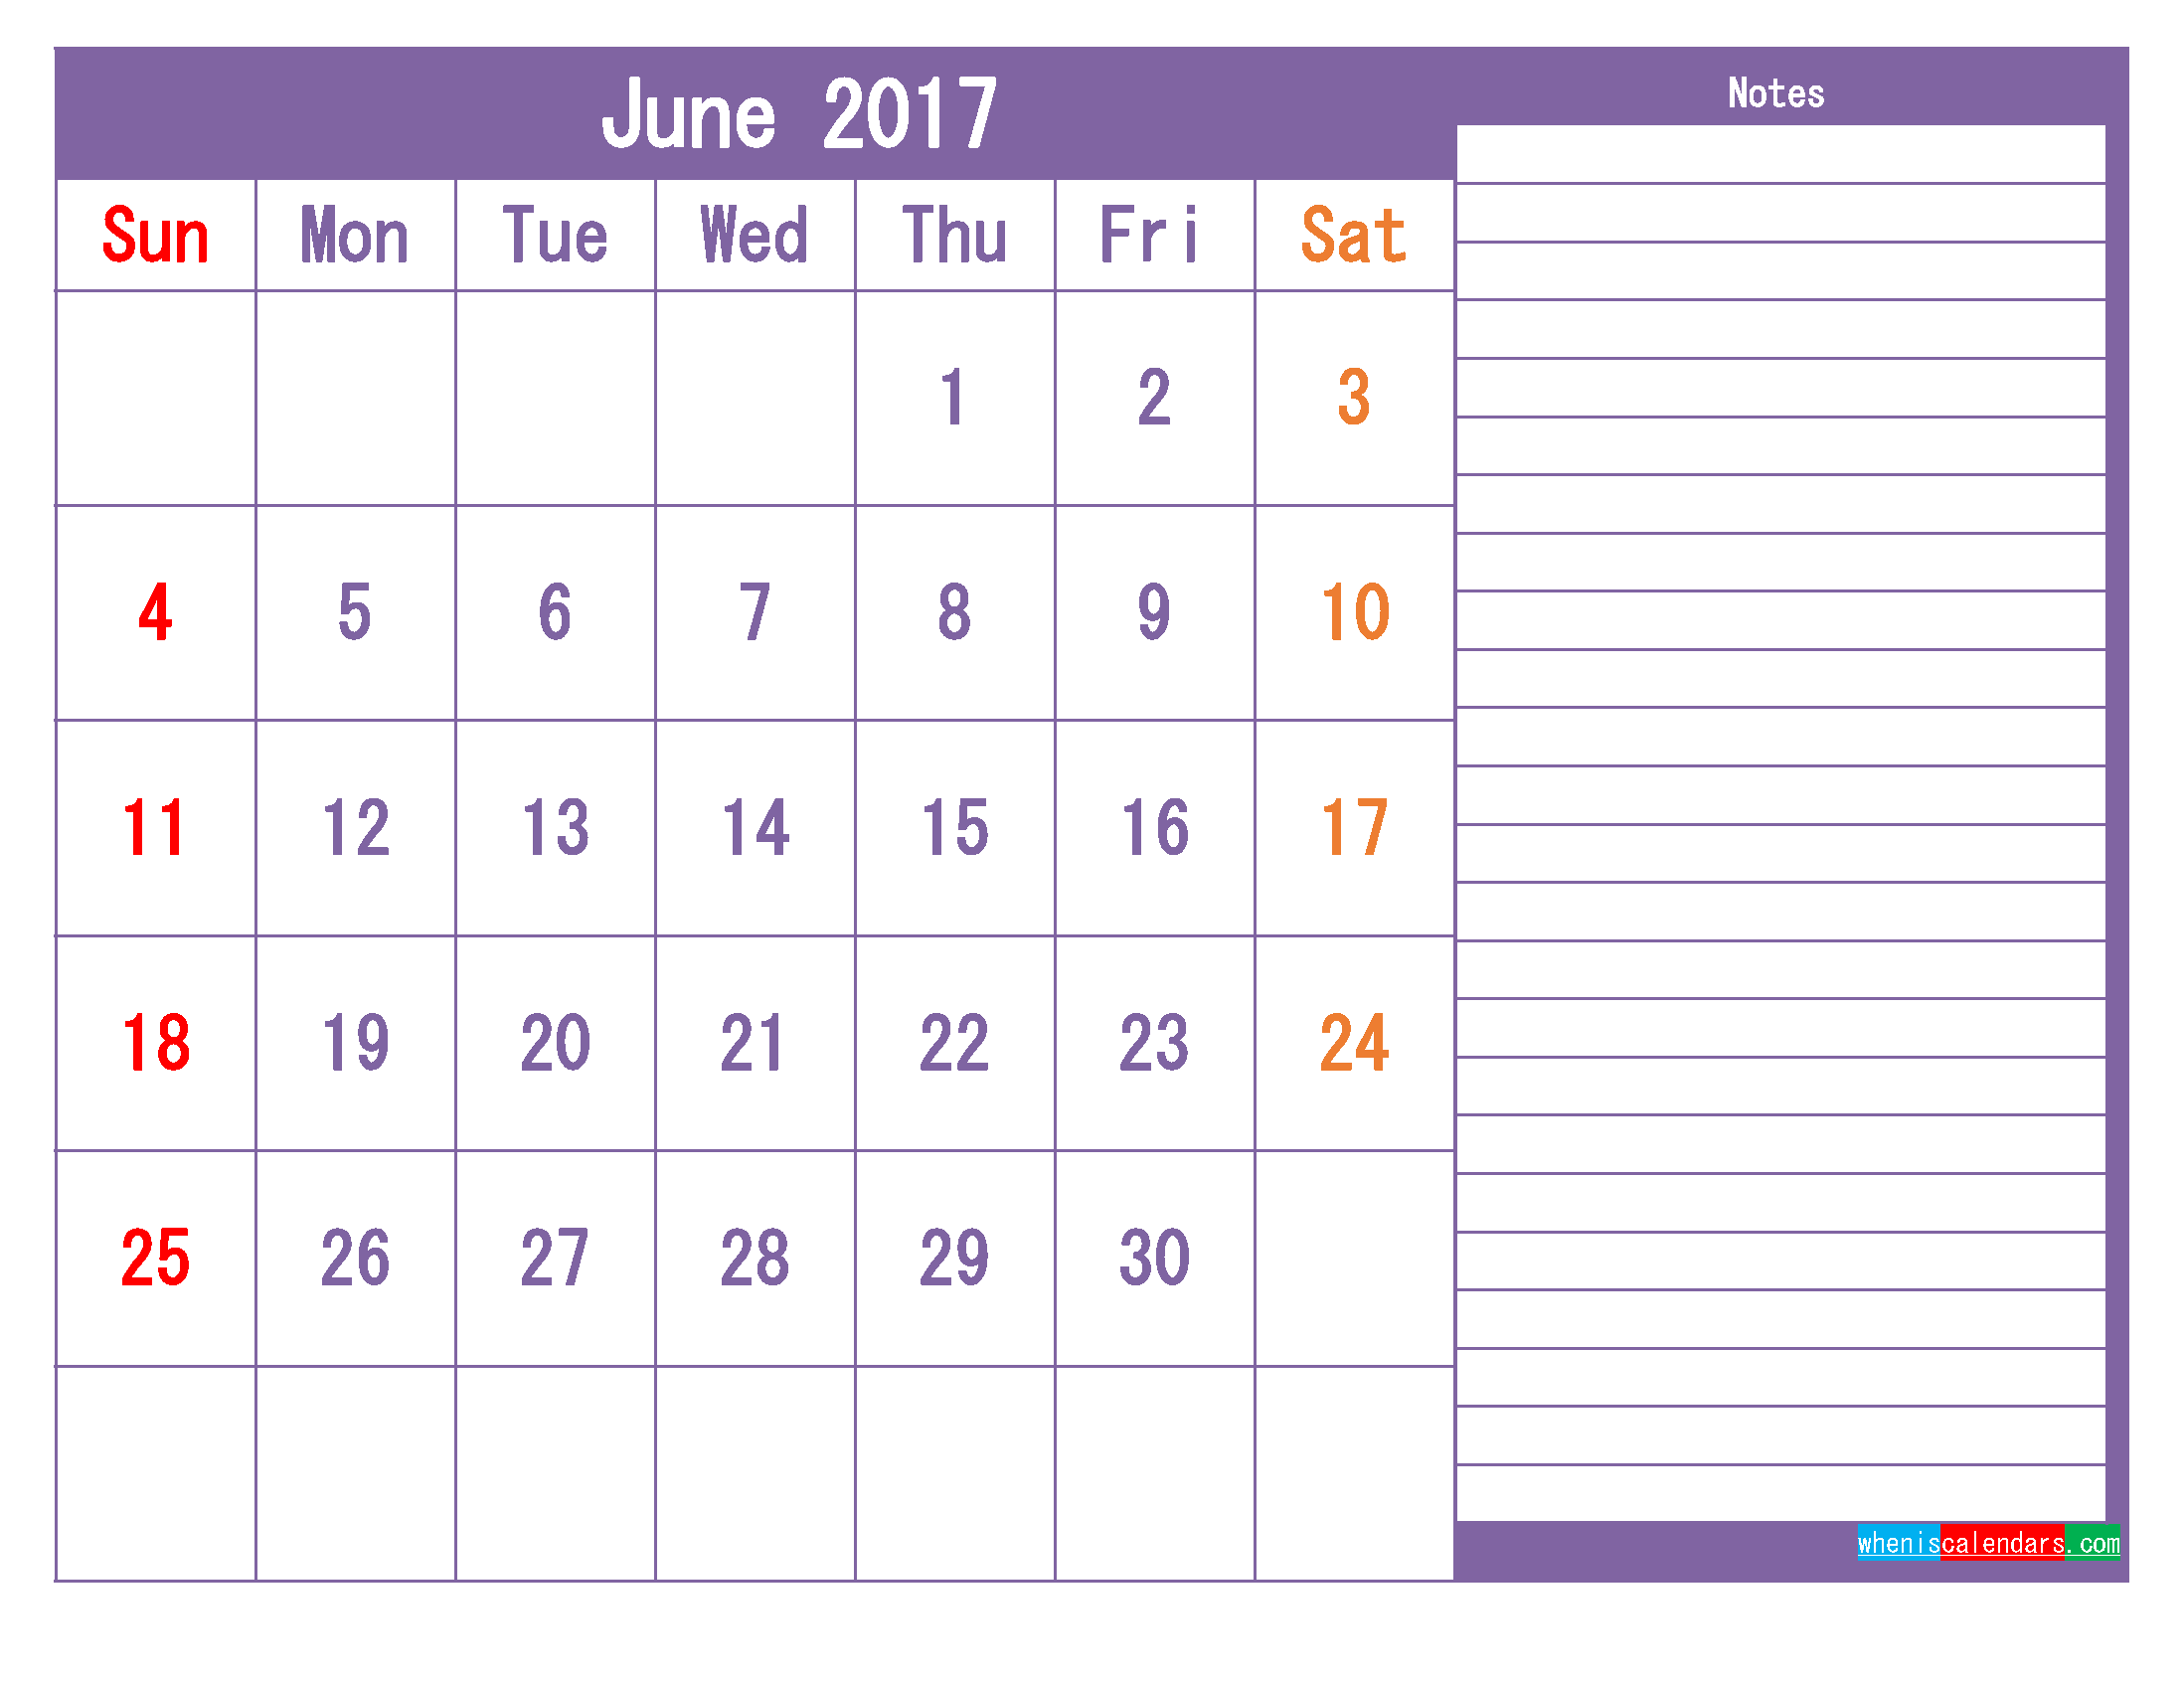 June Calendar 2017 Colorful